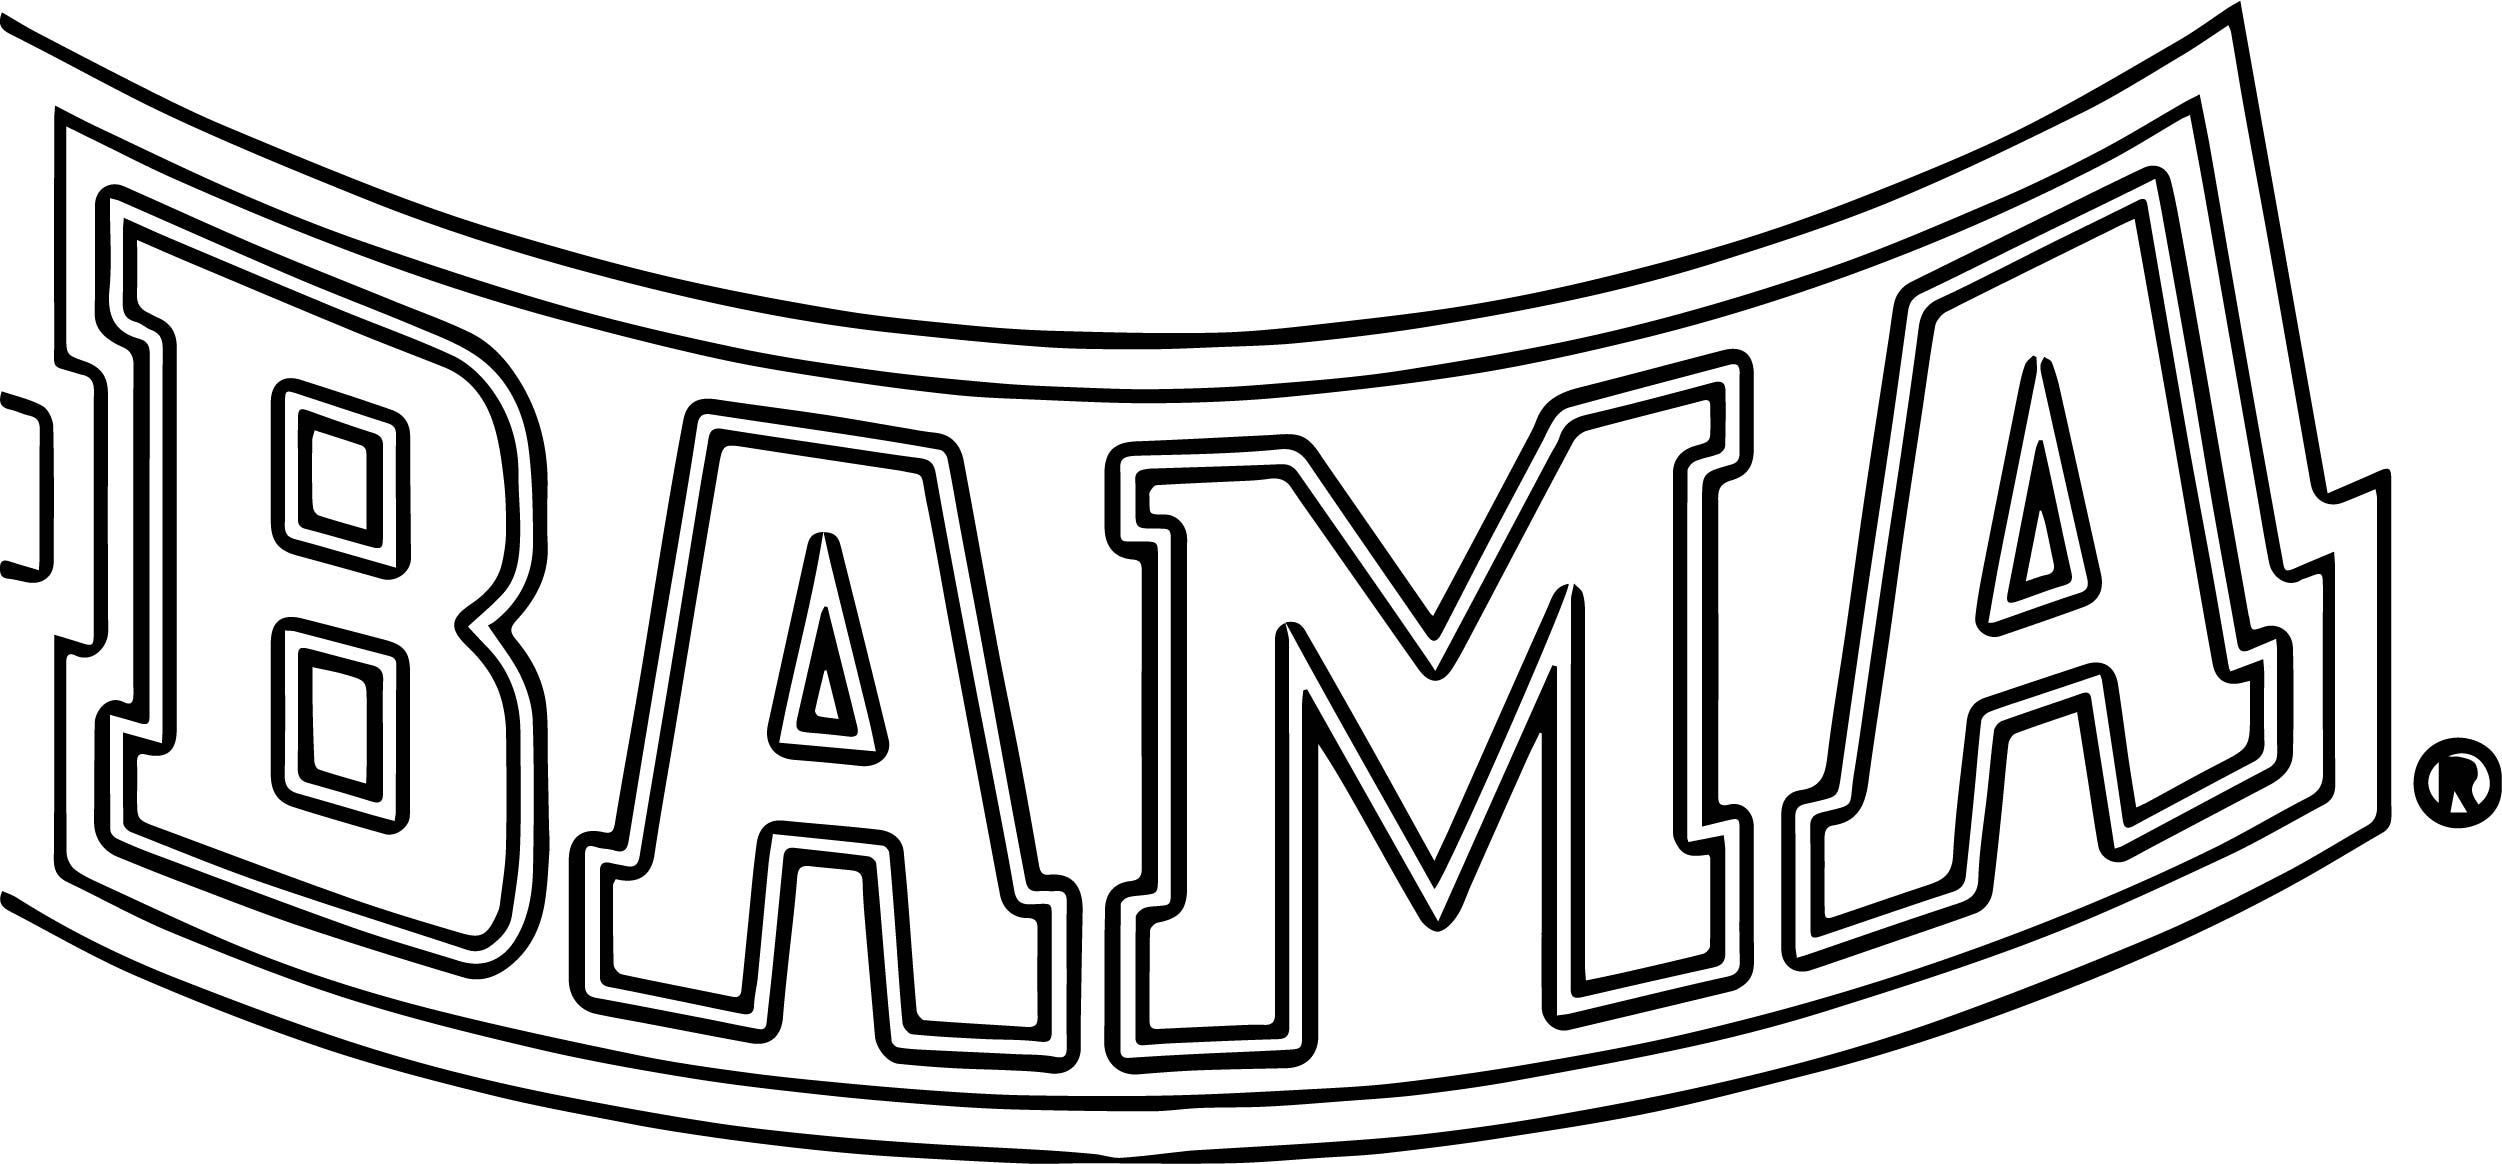 Bama Text Logo Coloring Page